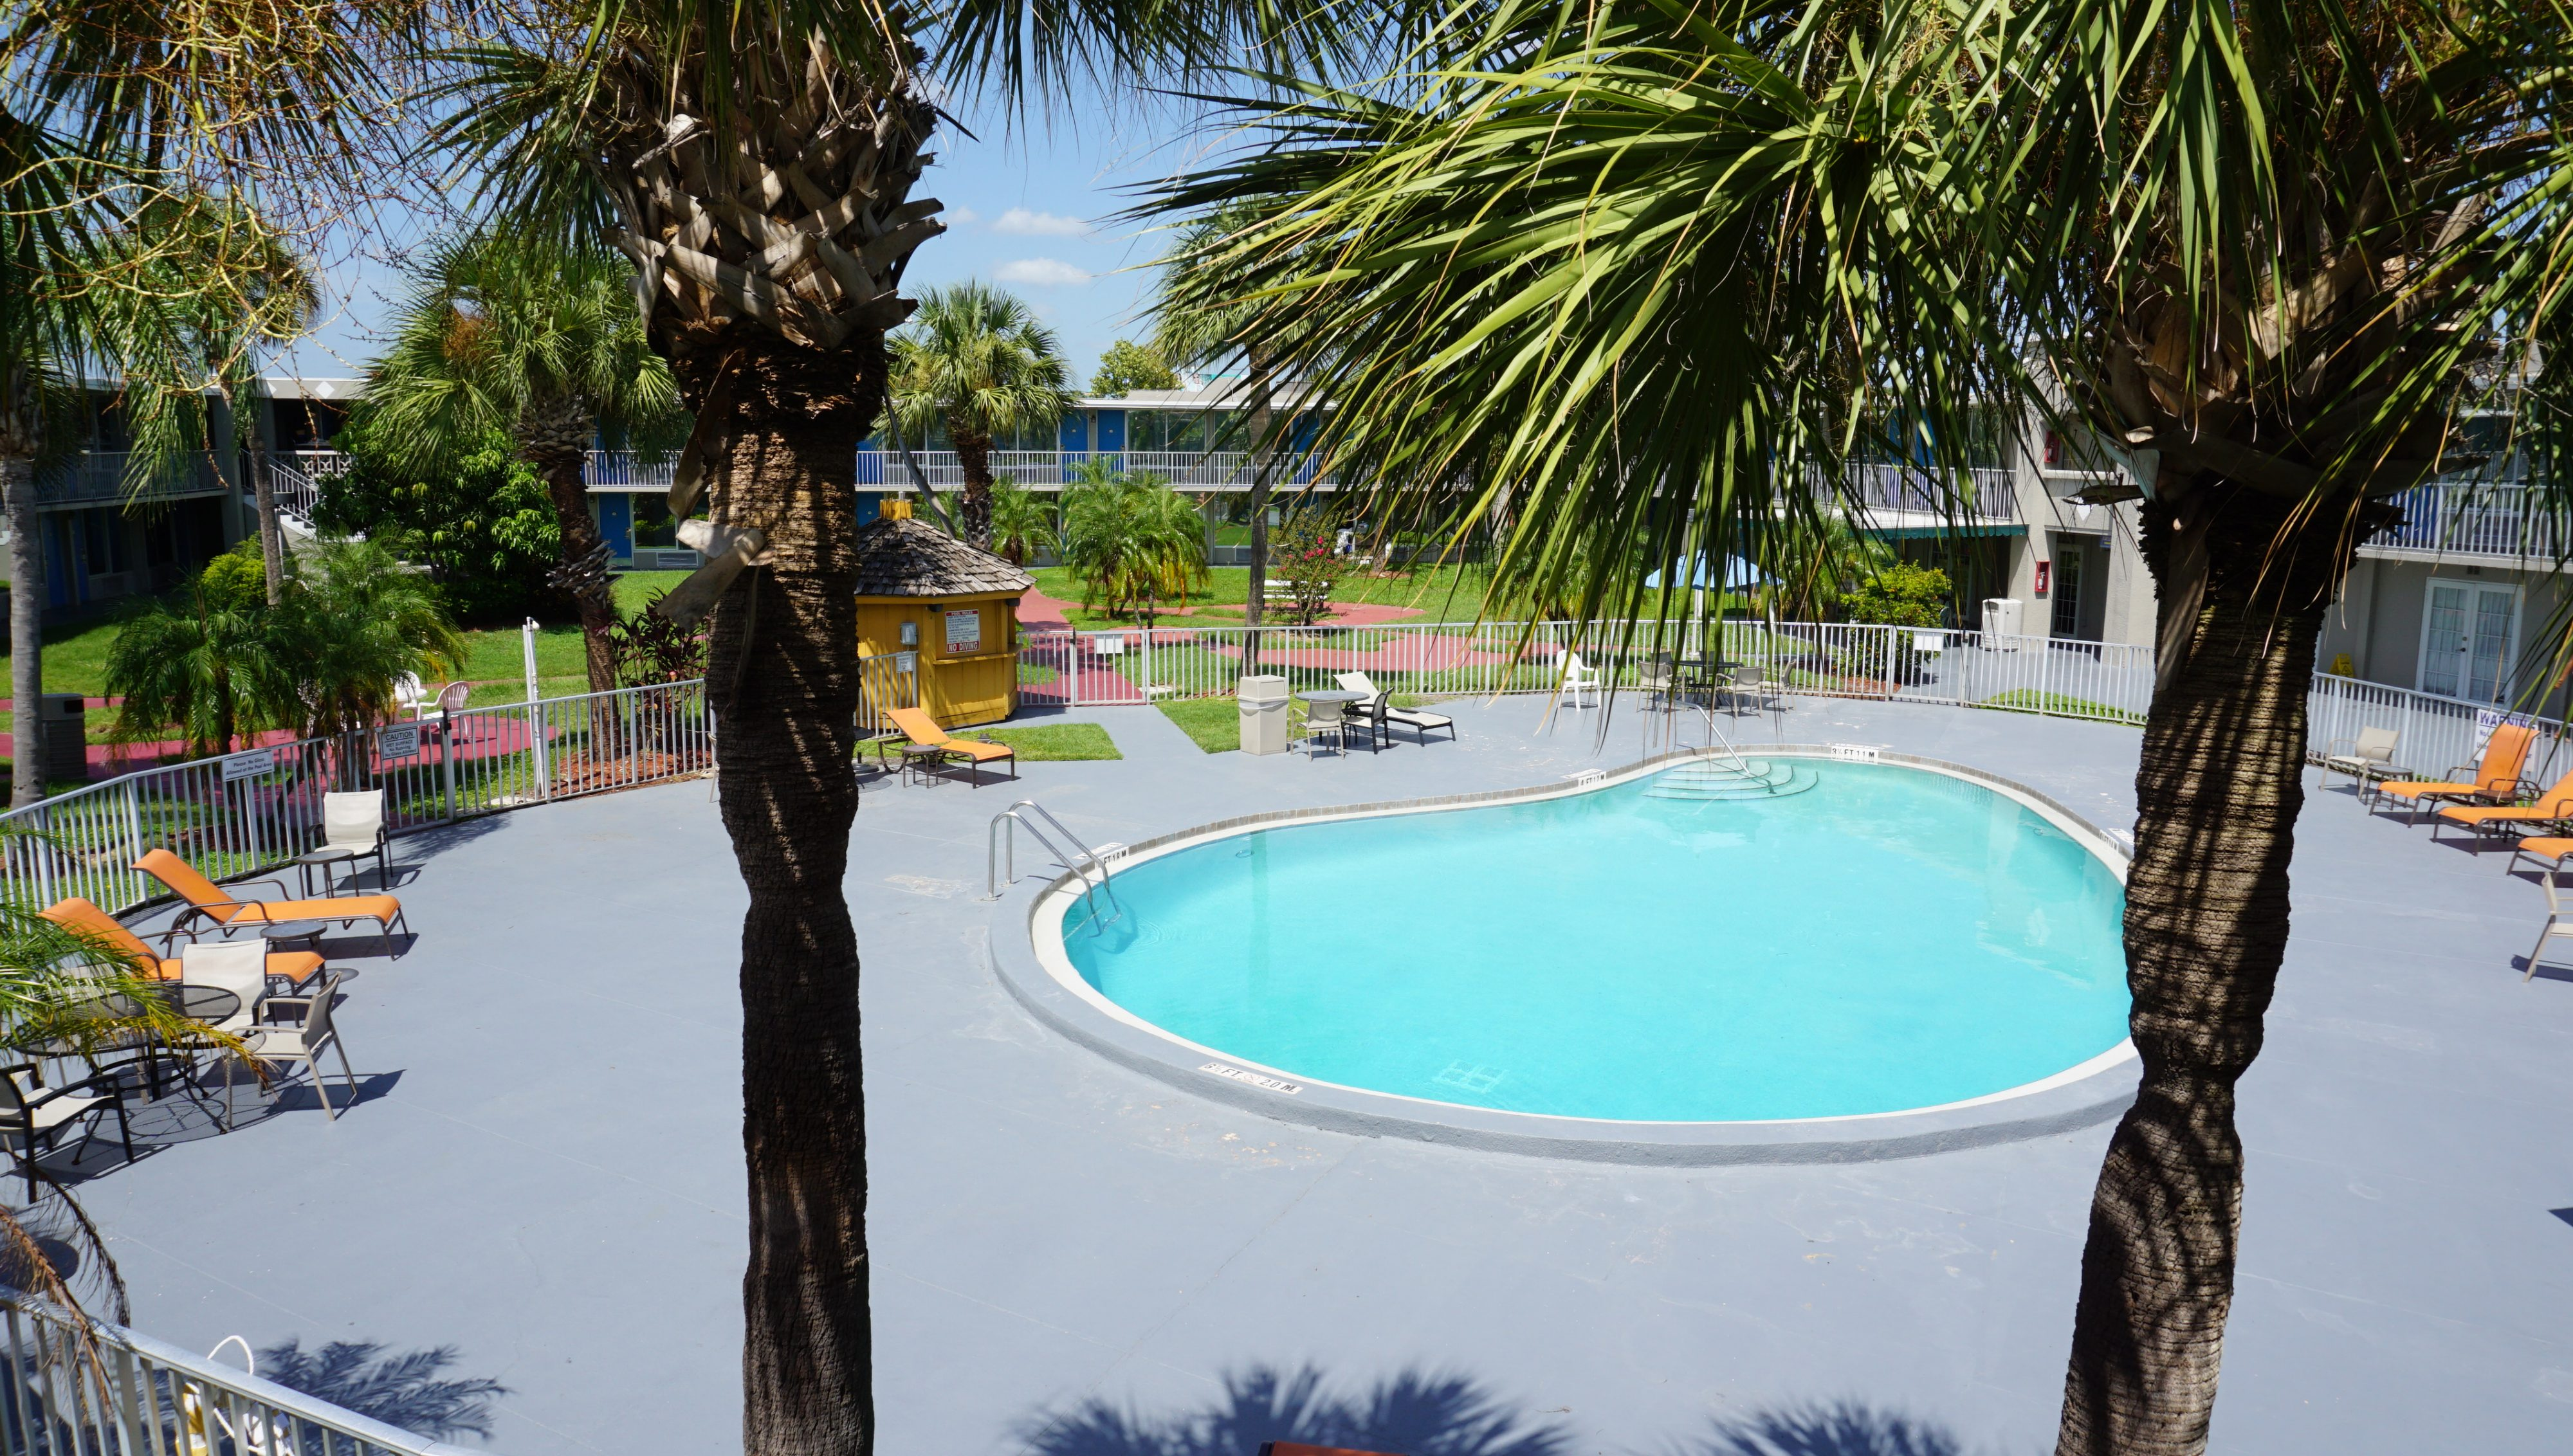 Days Inn Orlando International Drive Reviews are in: Unbeatable Location!